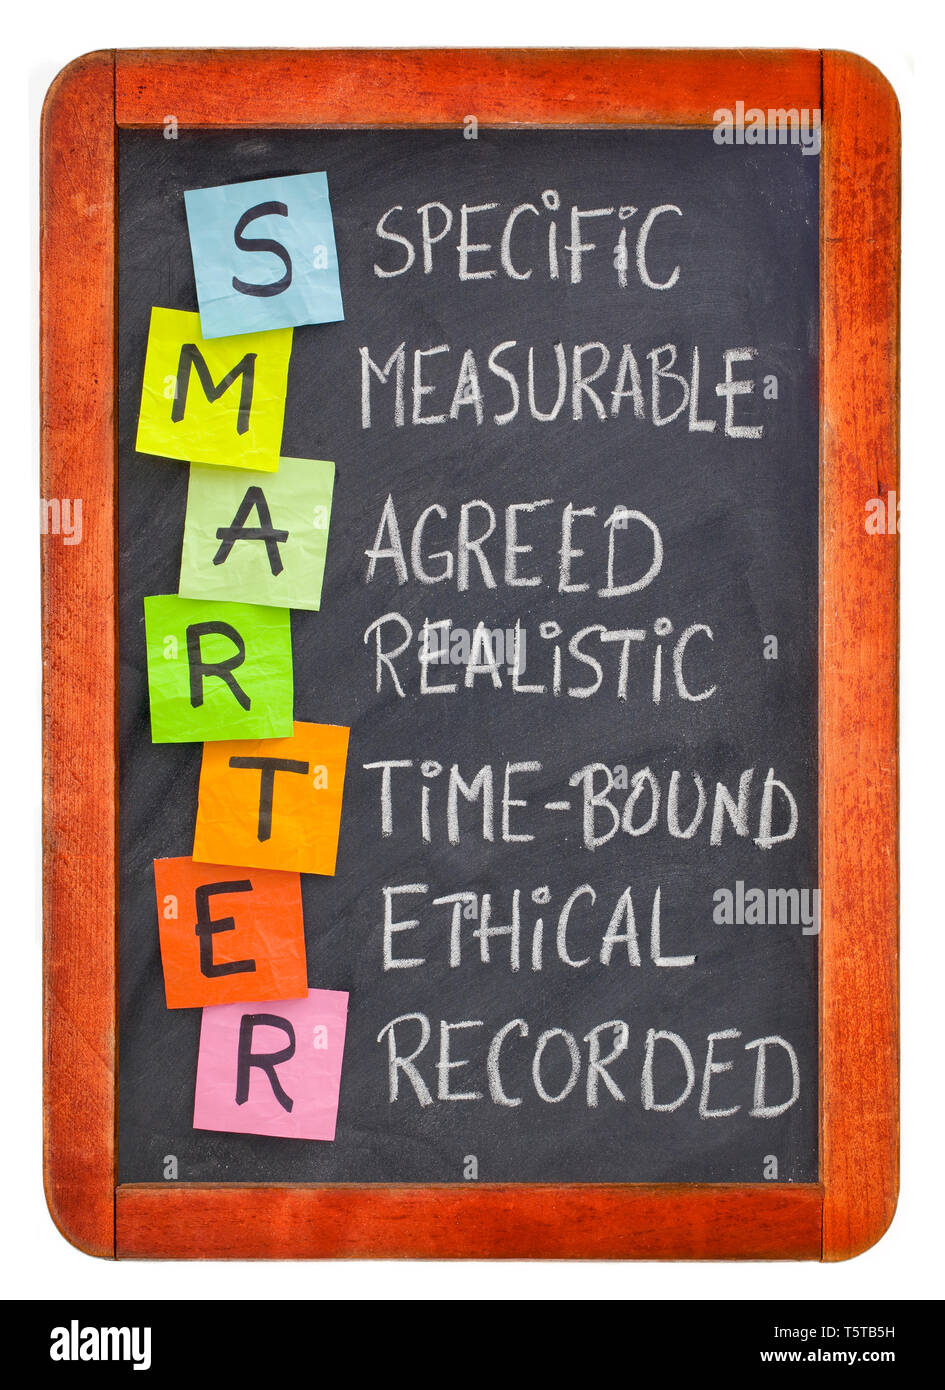 SMARTER (specific, measurable, agreed, realistic, time-bound, ethical, recorded) - acronym for goal setting methodology, white chalk handwriting, colo - Stock Image